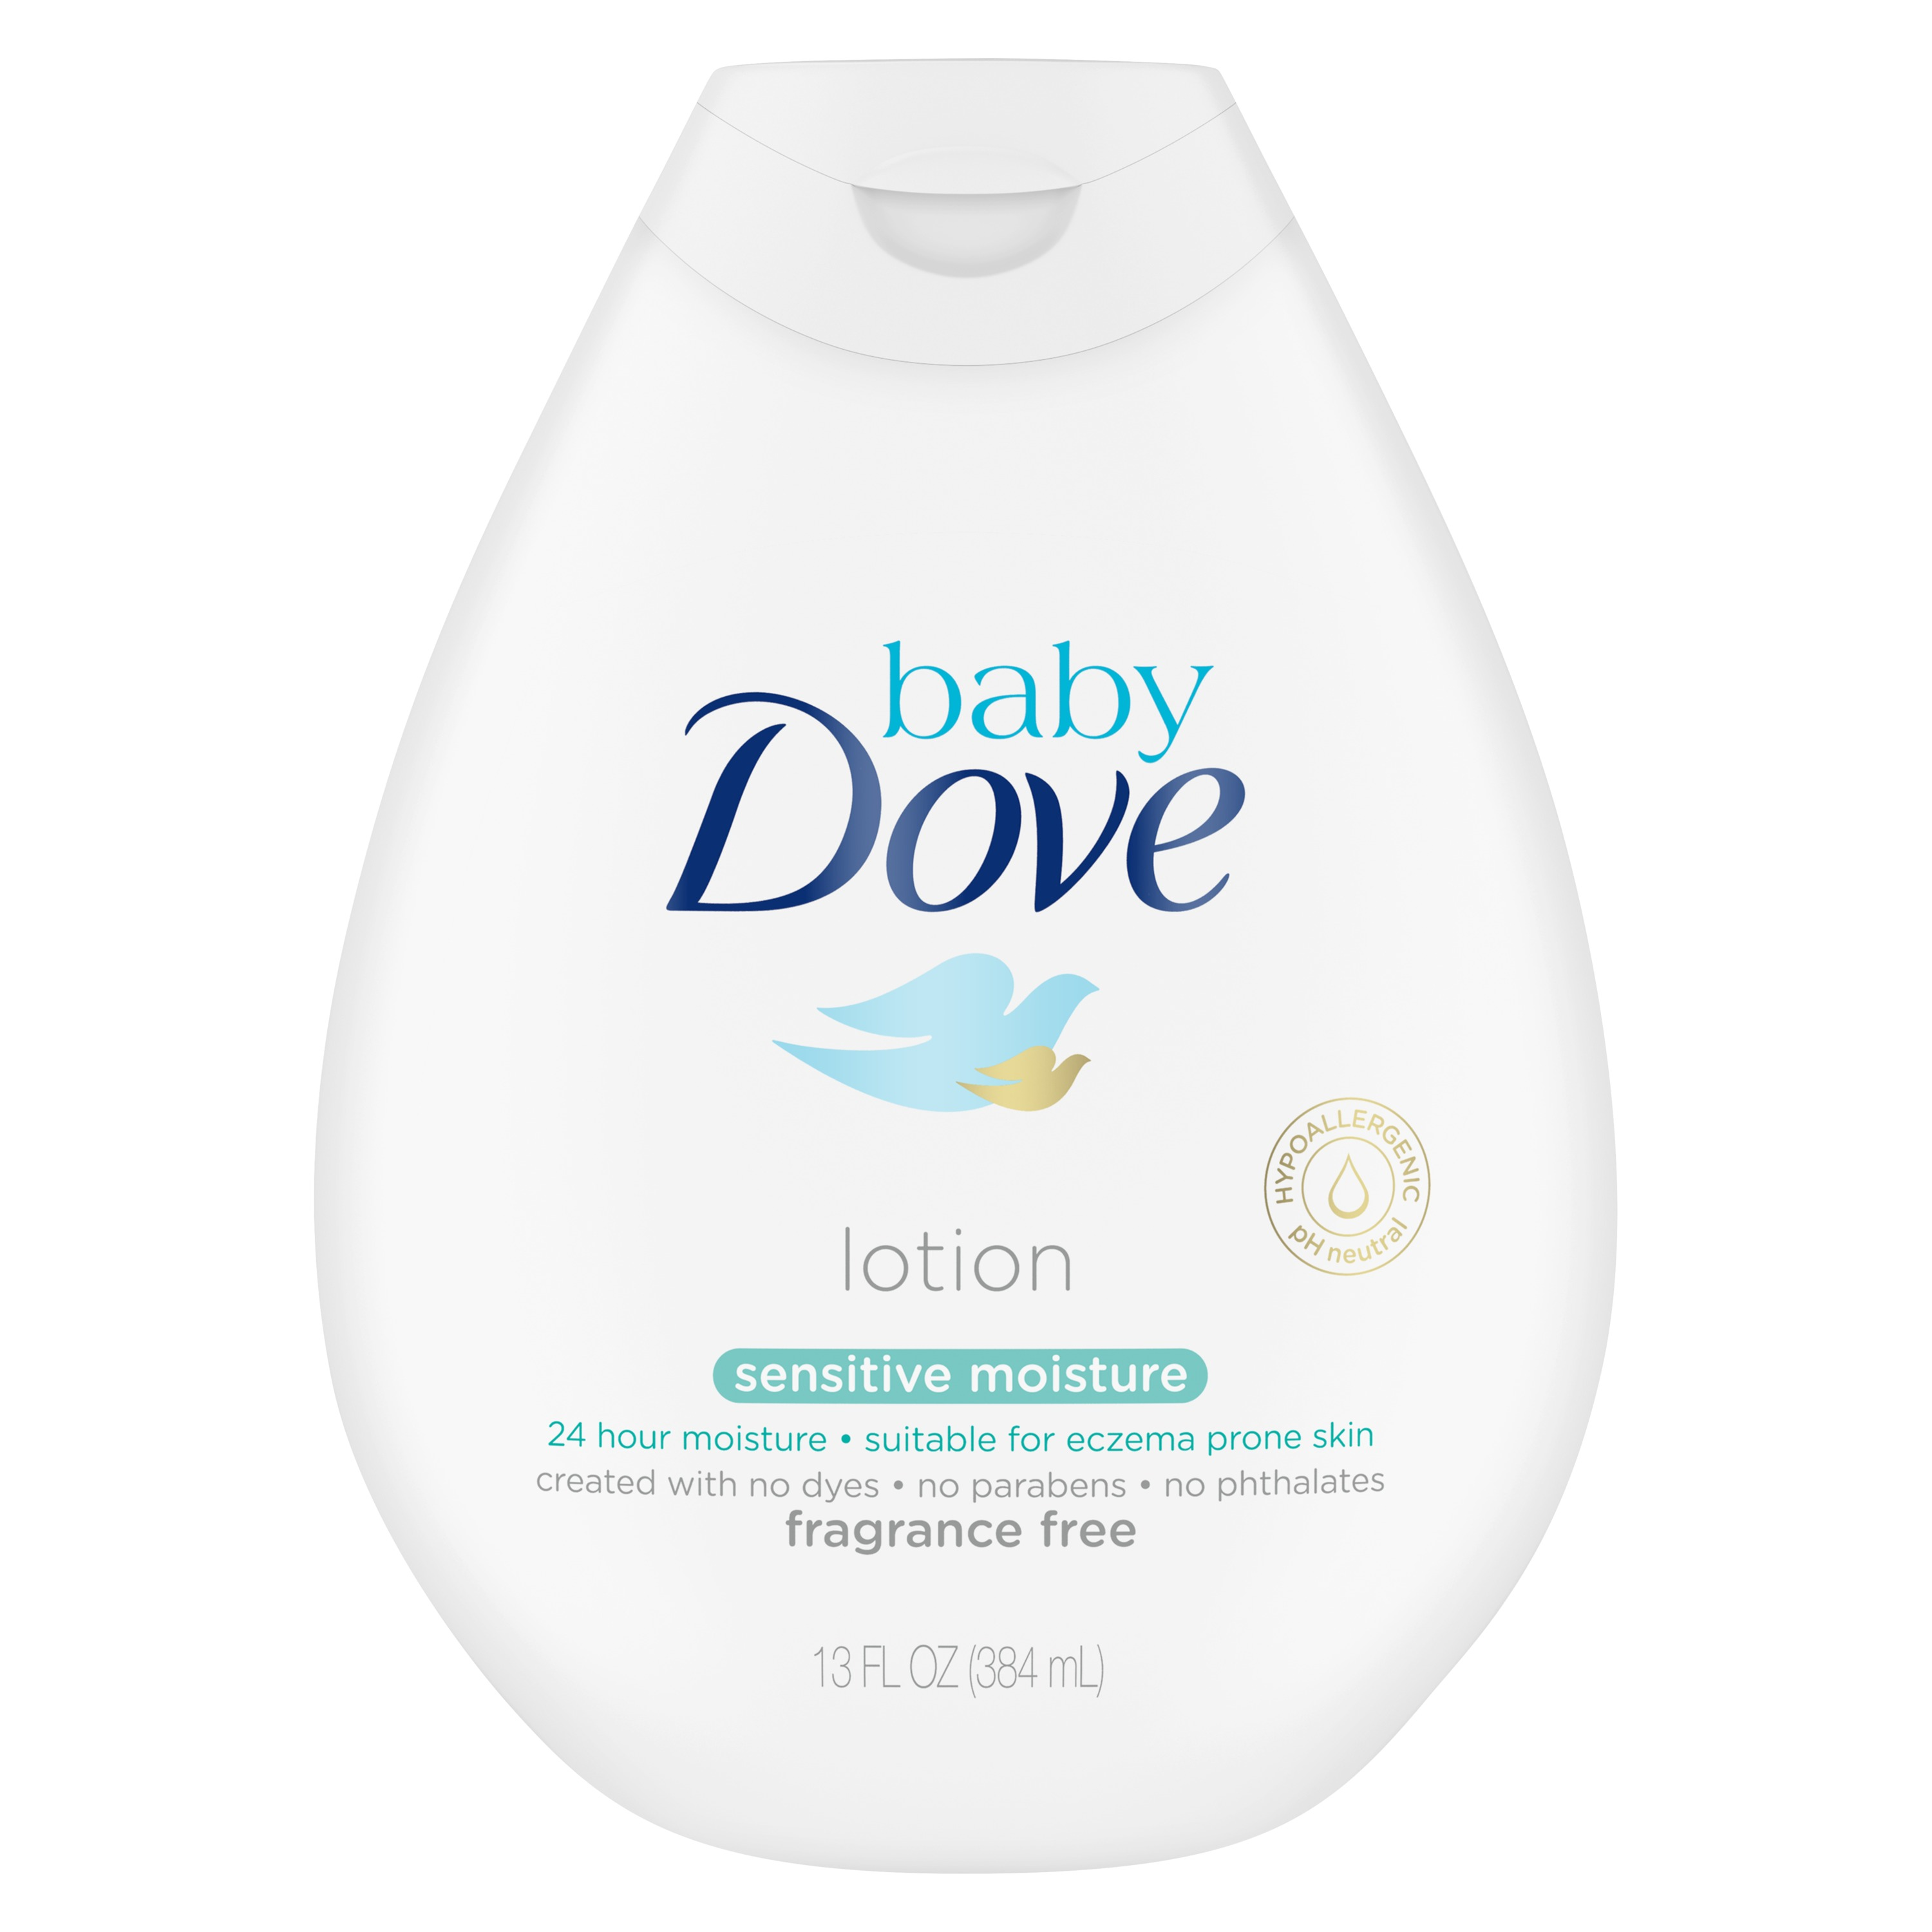 Baby Dove Sensitive Moisture Baby Lotion, 13 oz